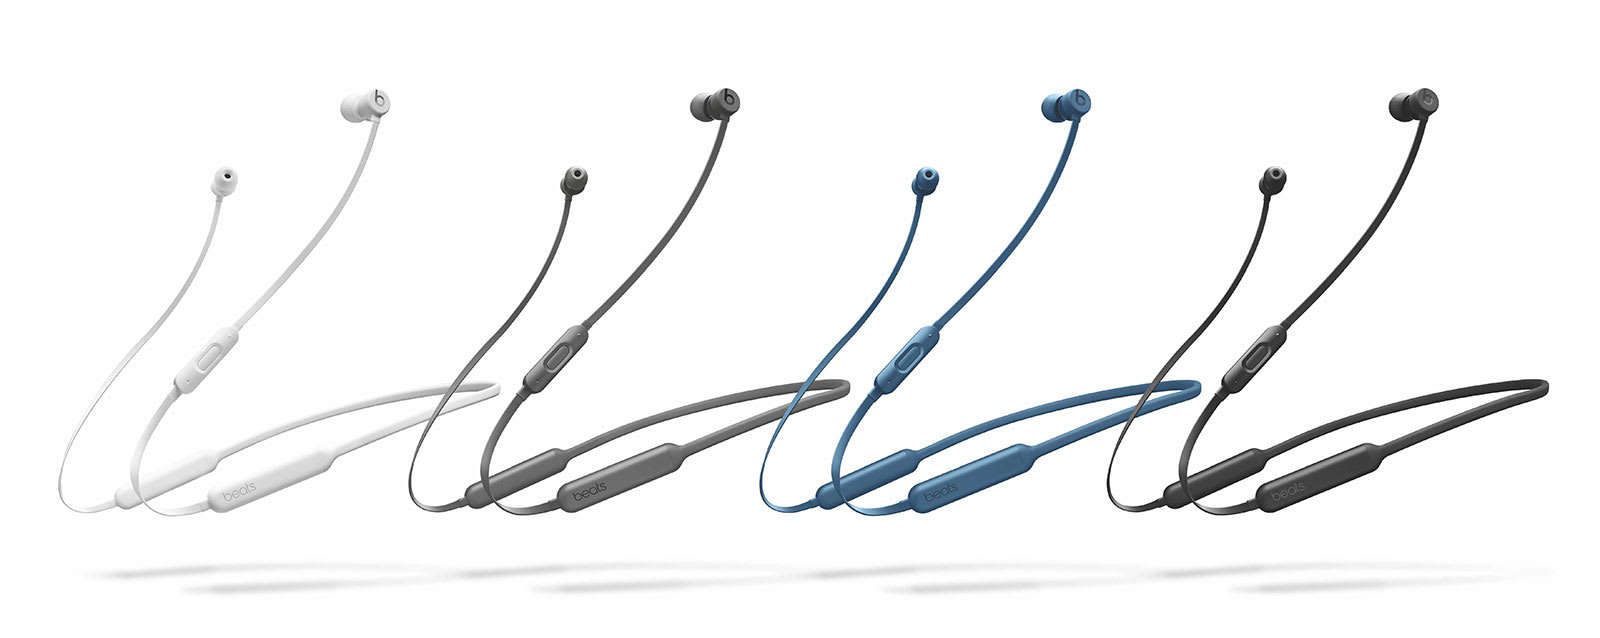 best service 54e8b 8e976 The delayed BeatsX wireless earbuds arrive February 10th